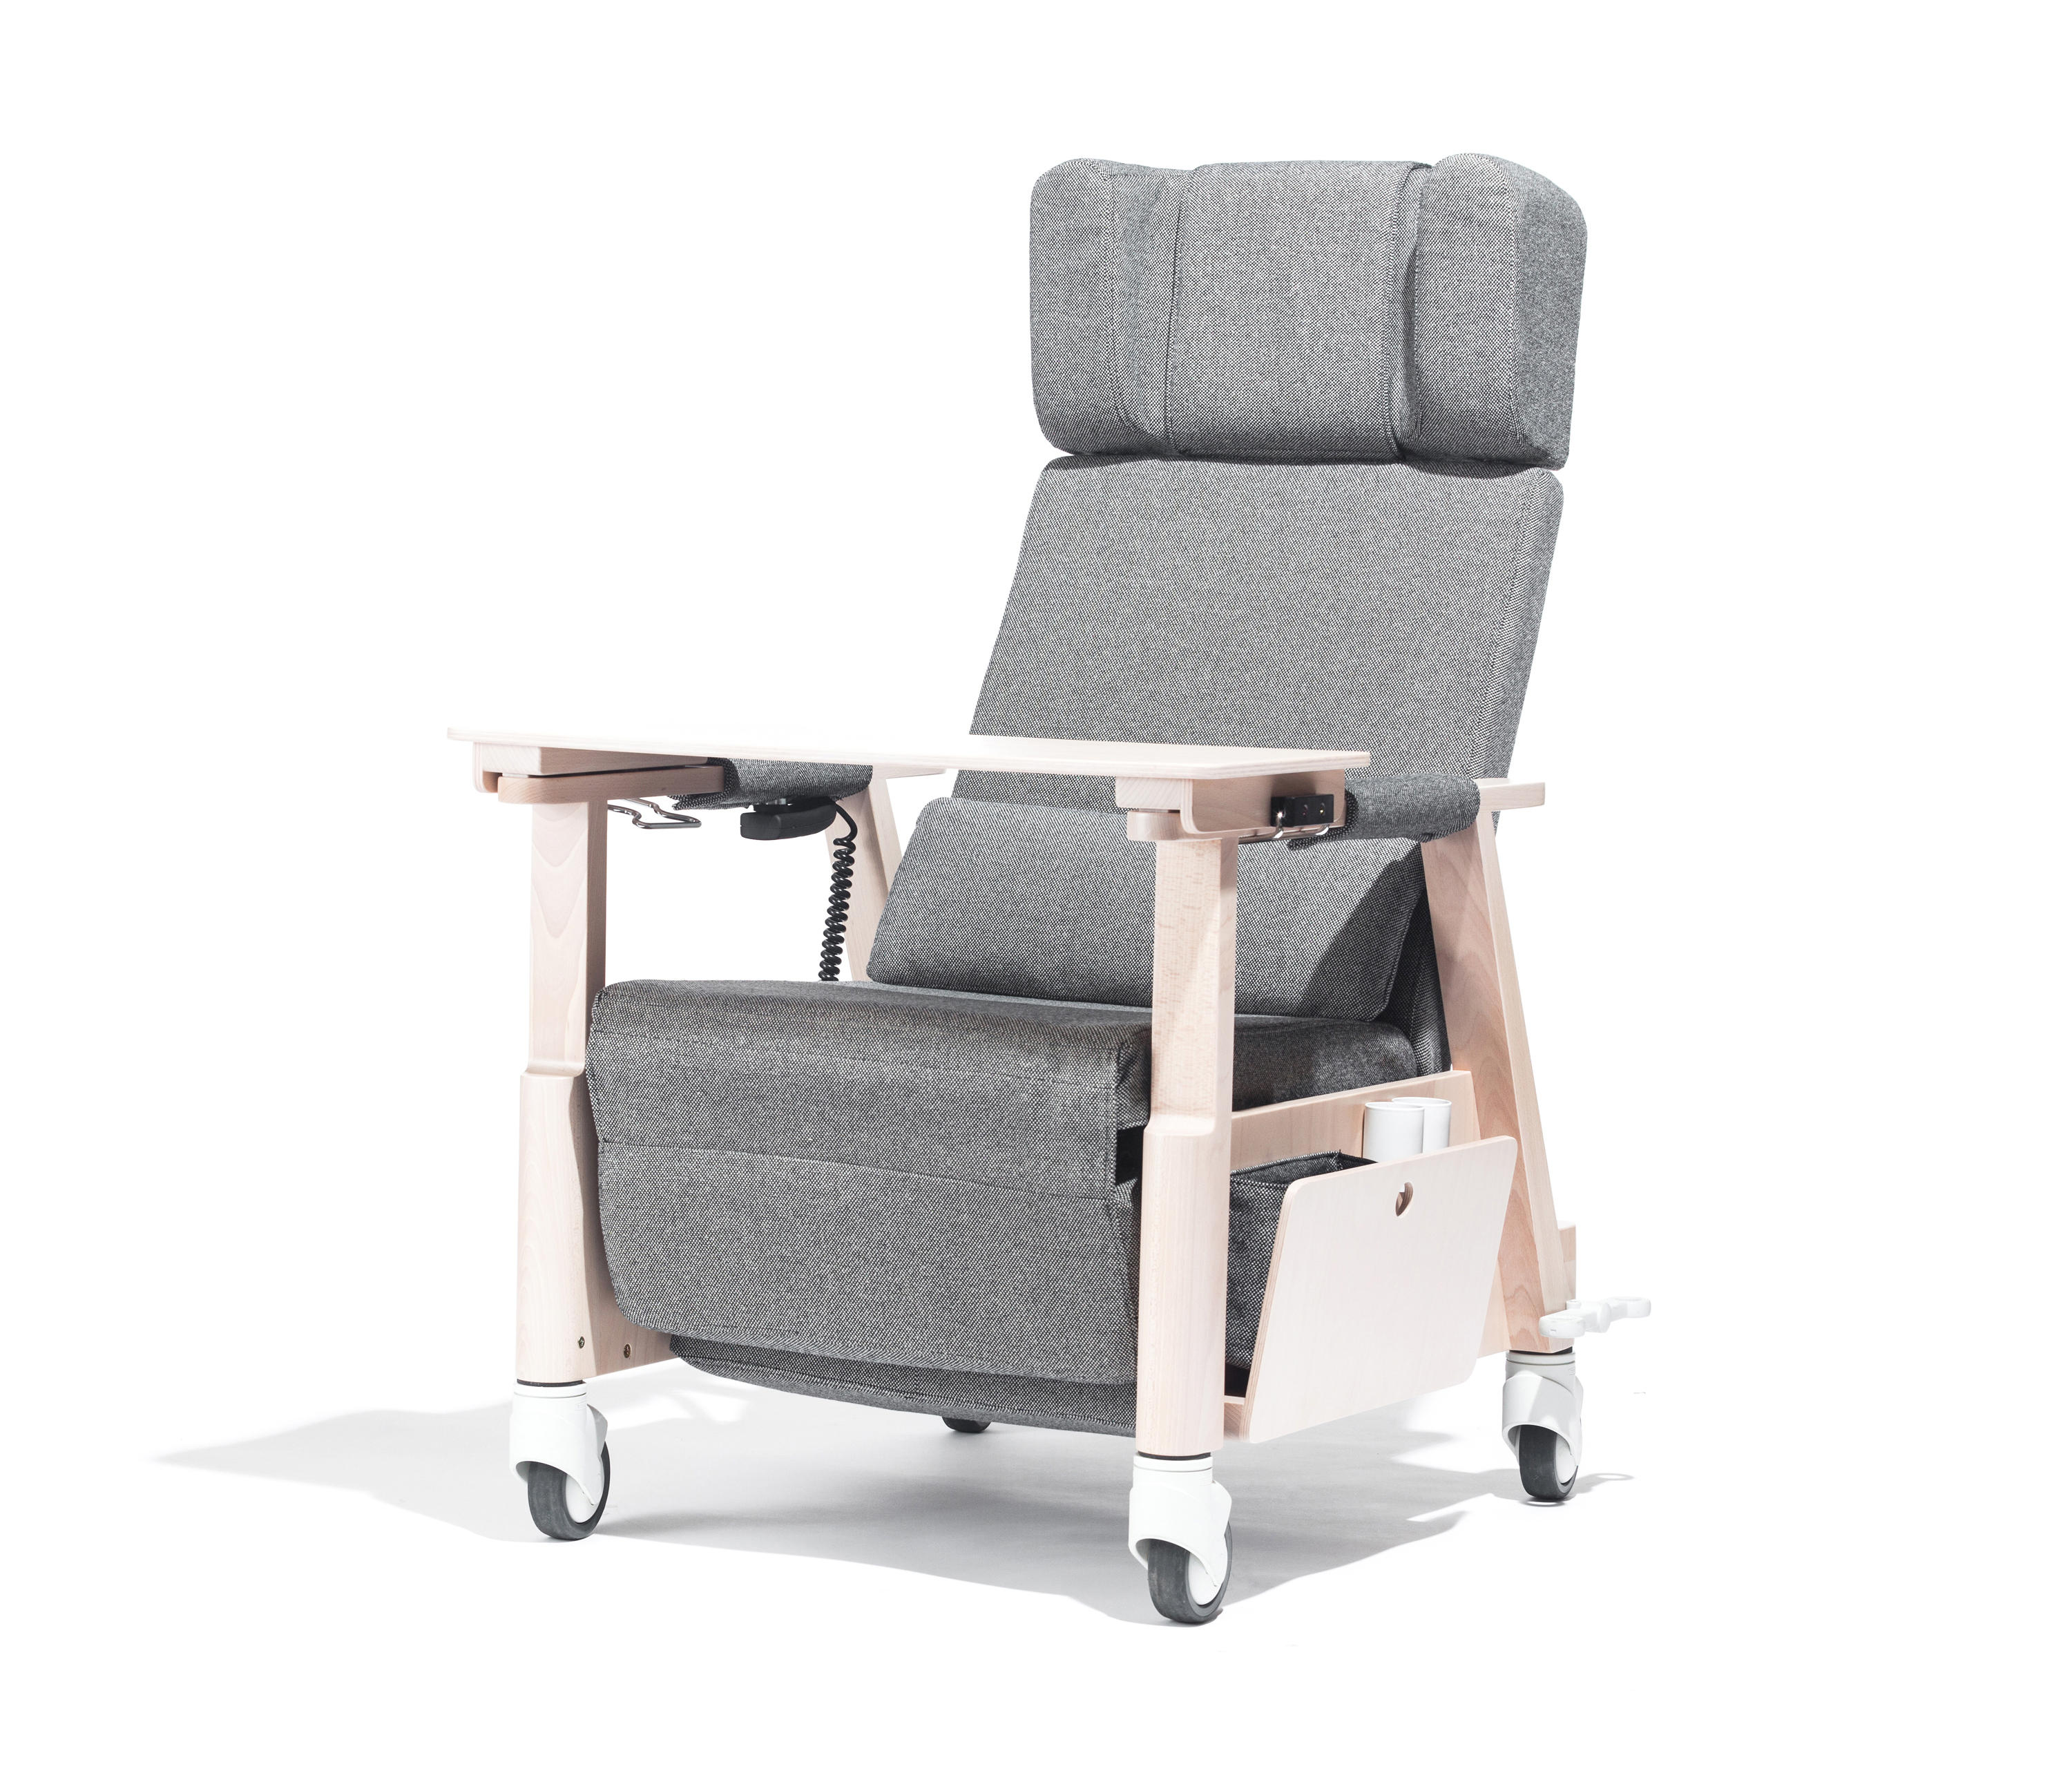 elderly chairs ergonomic chair checklist brilliant and also lovely armchairs for invigorate